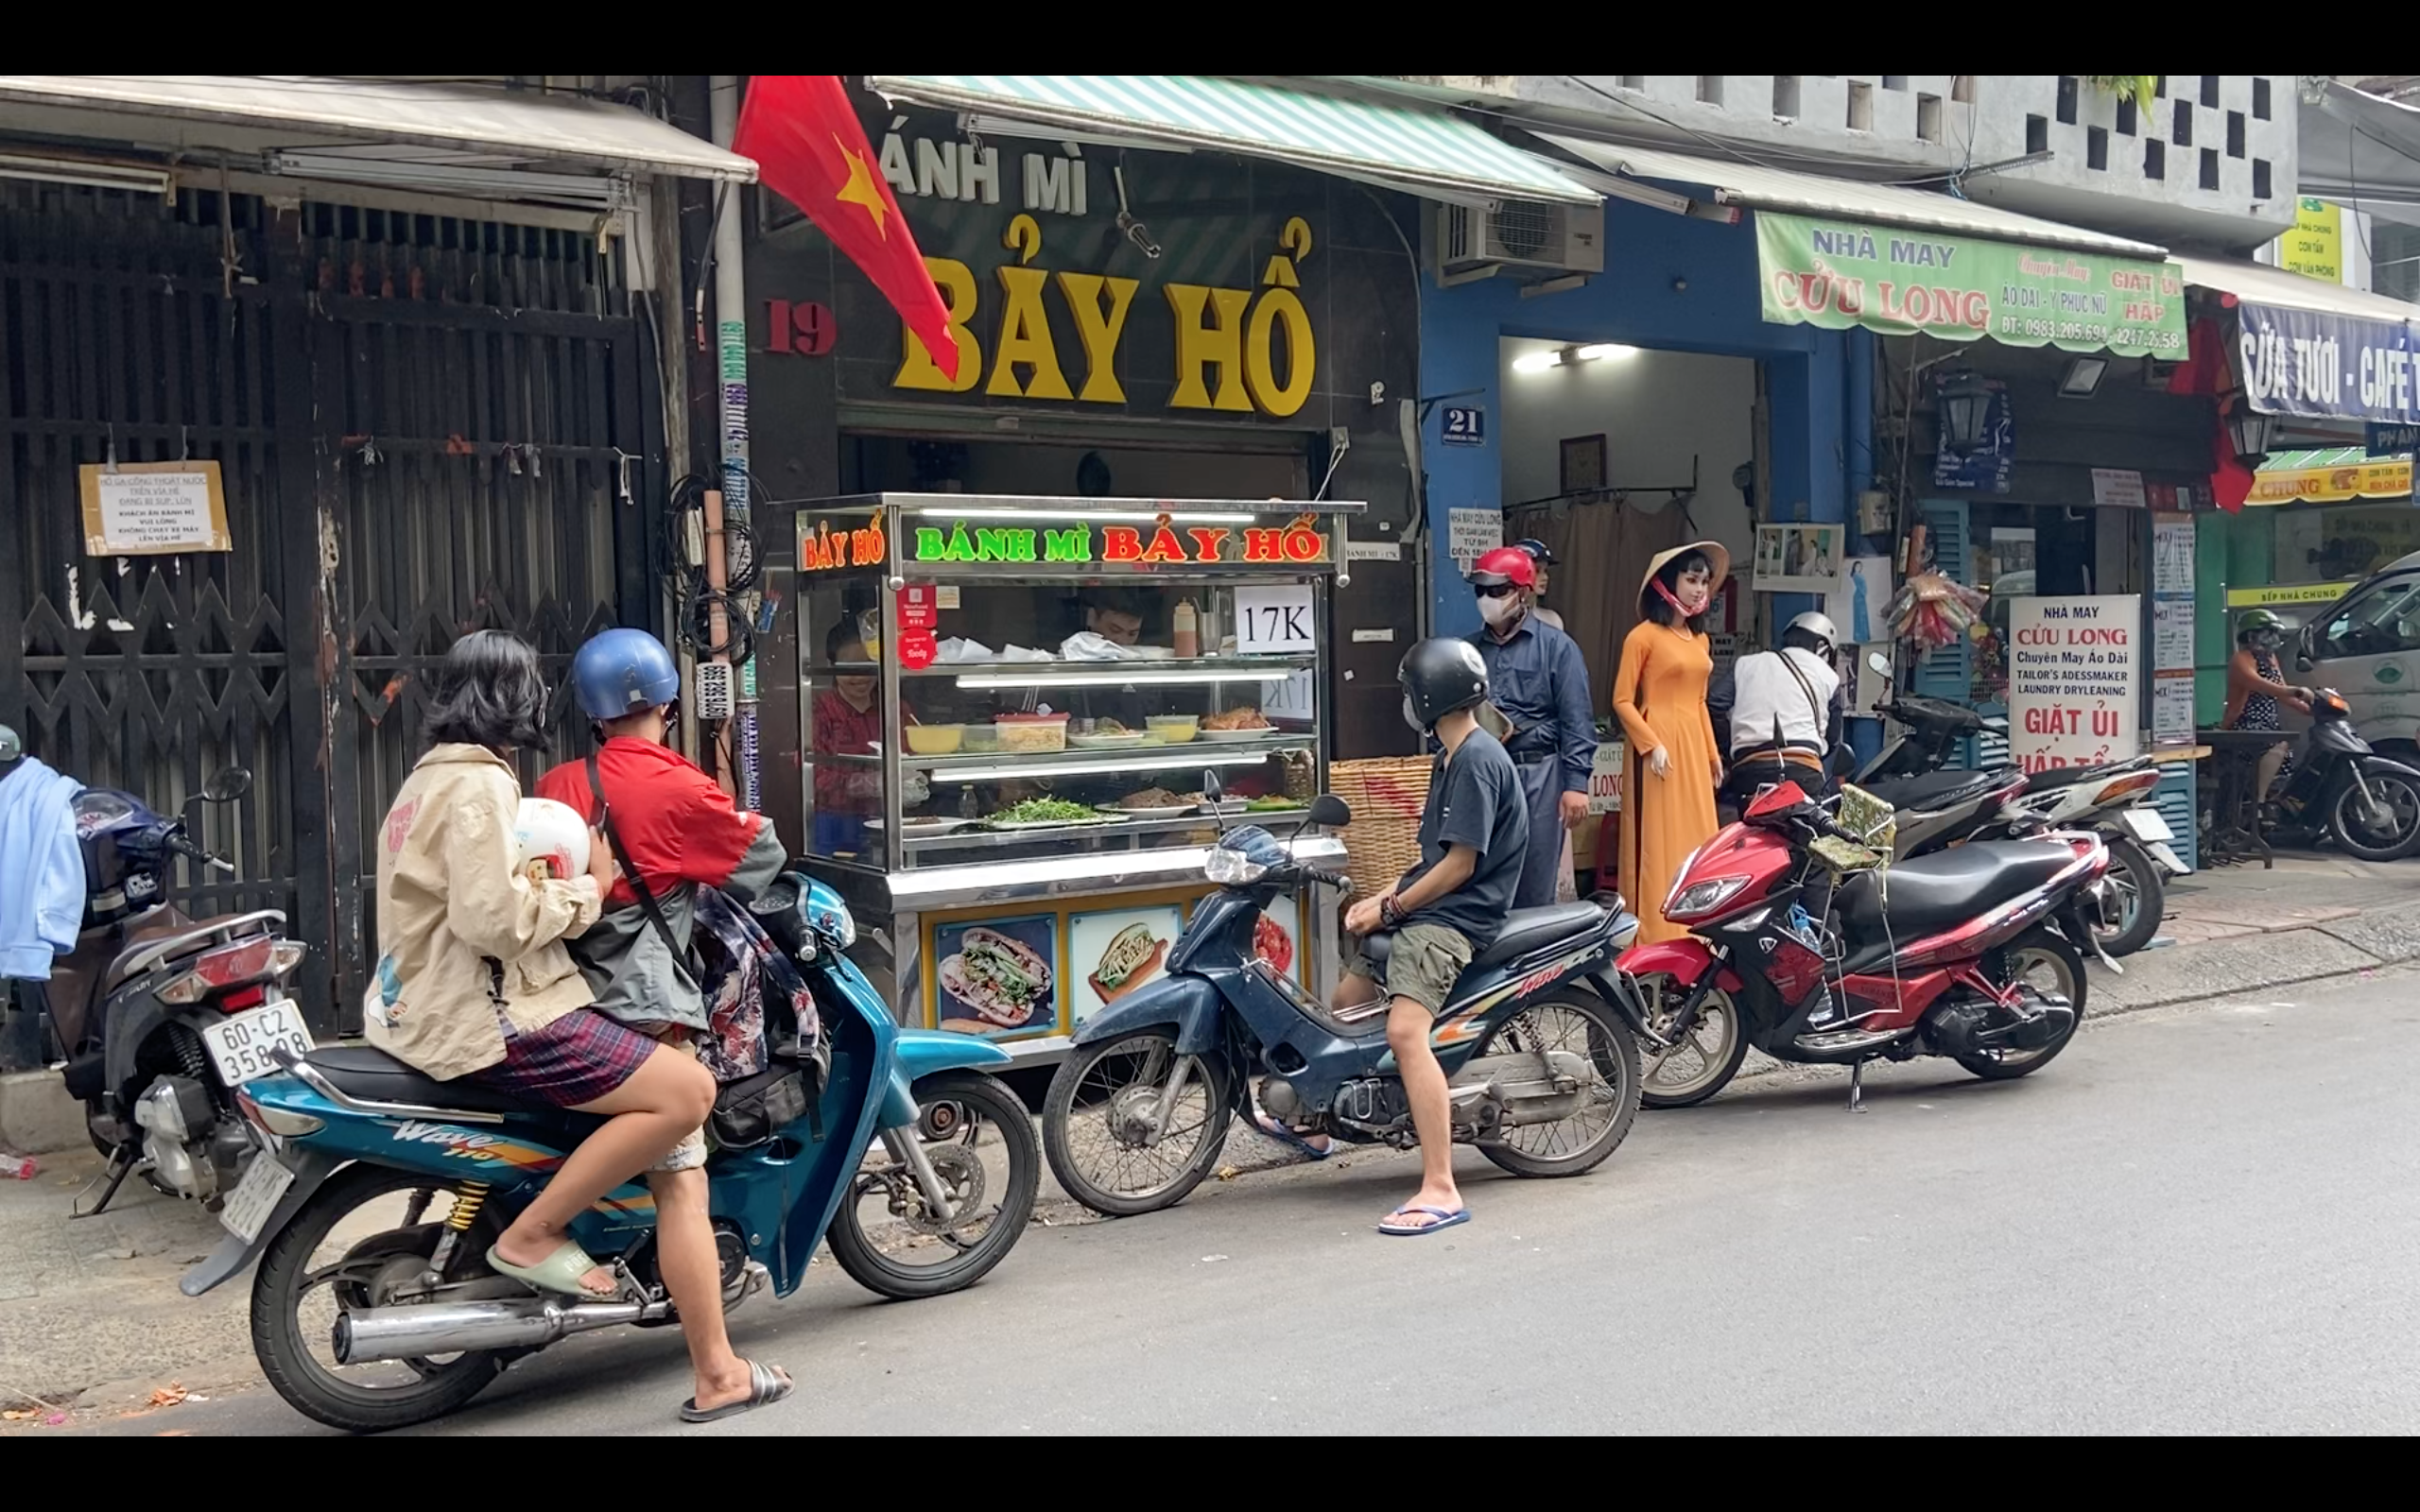 Banh Mi Bay Ho attracts most of its customers in the early morning at its location on Huynh Khuong Ninh Street, District 1, Ho Chi Minh City. Photo: Linh To / Tuoi Tre